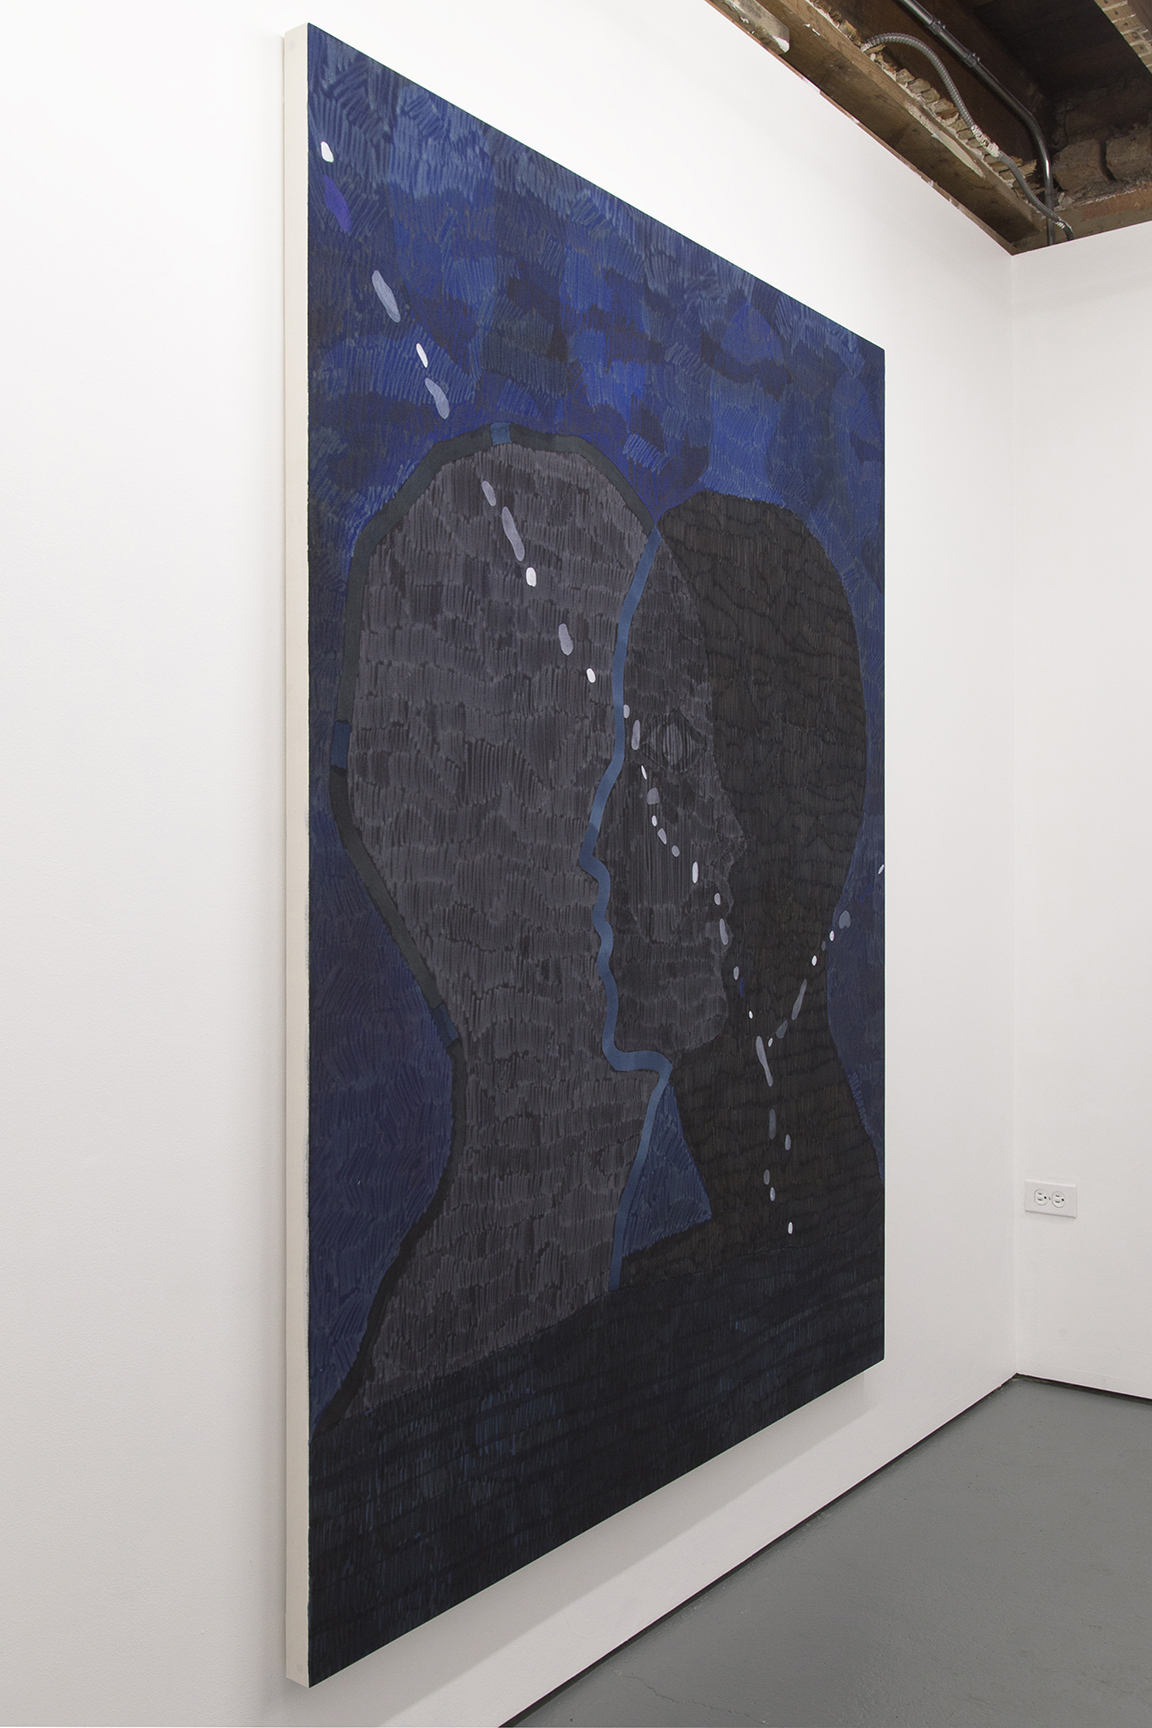 Blue crossover, 2015, 56 x 72 inches, acrylic on cotton.